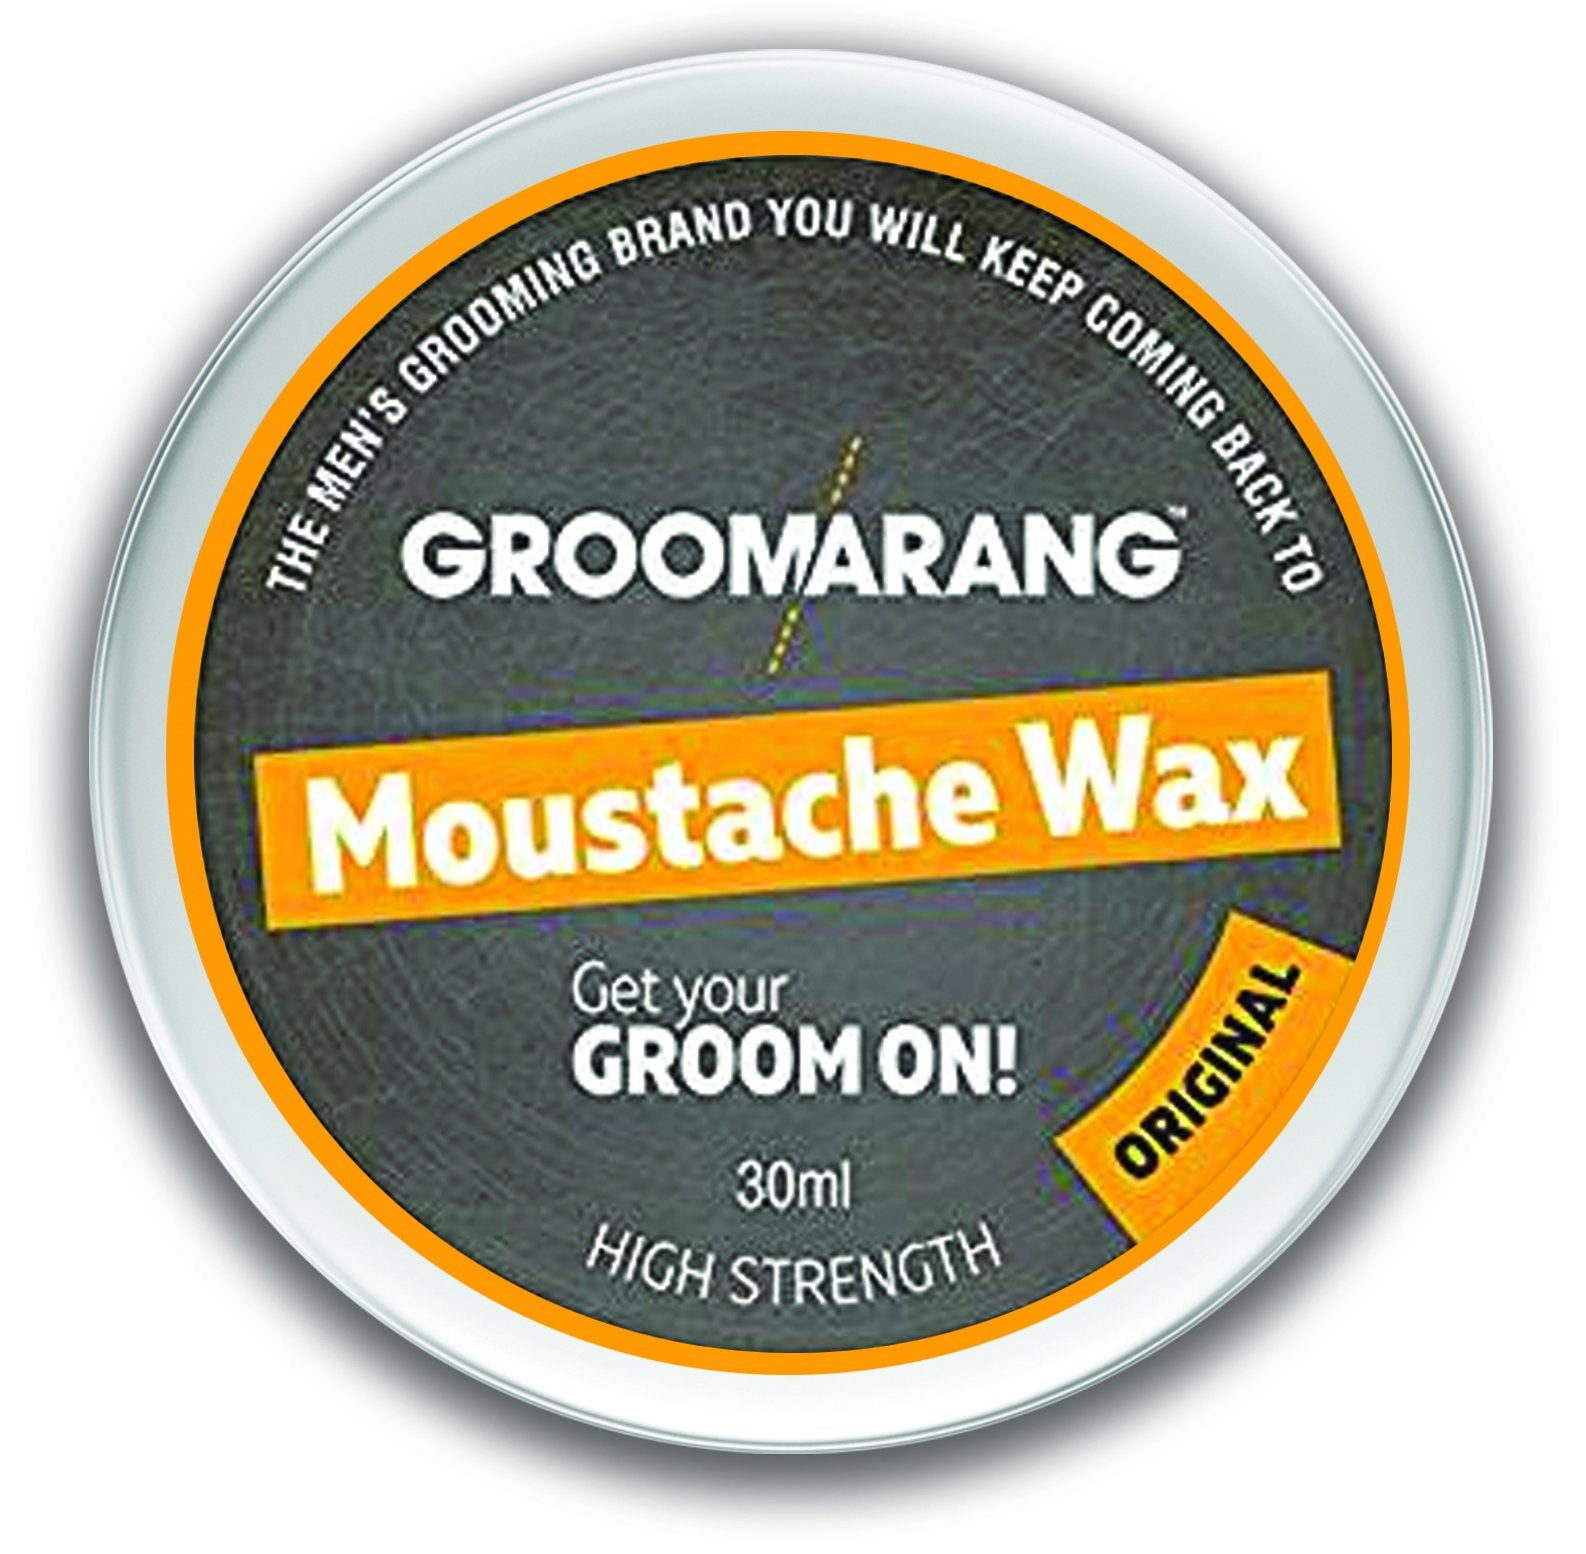 Groomarang Original Moustache Wax by  Forever Cosmetics